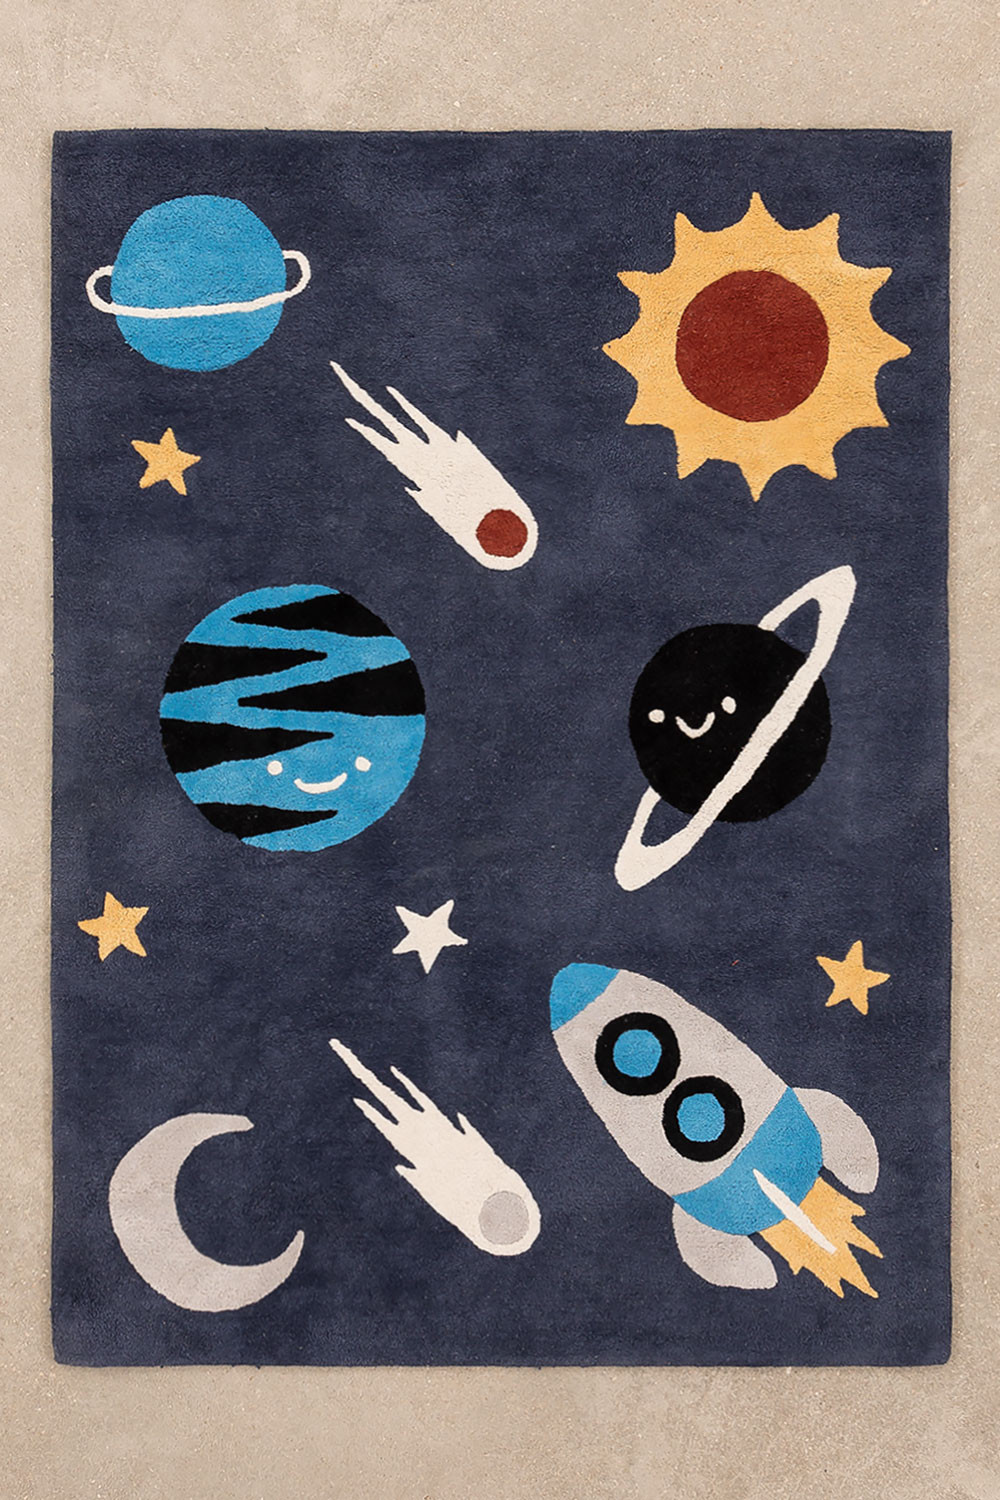 Cotton Rug (140x100 cm) Space Kids, gallery image 1